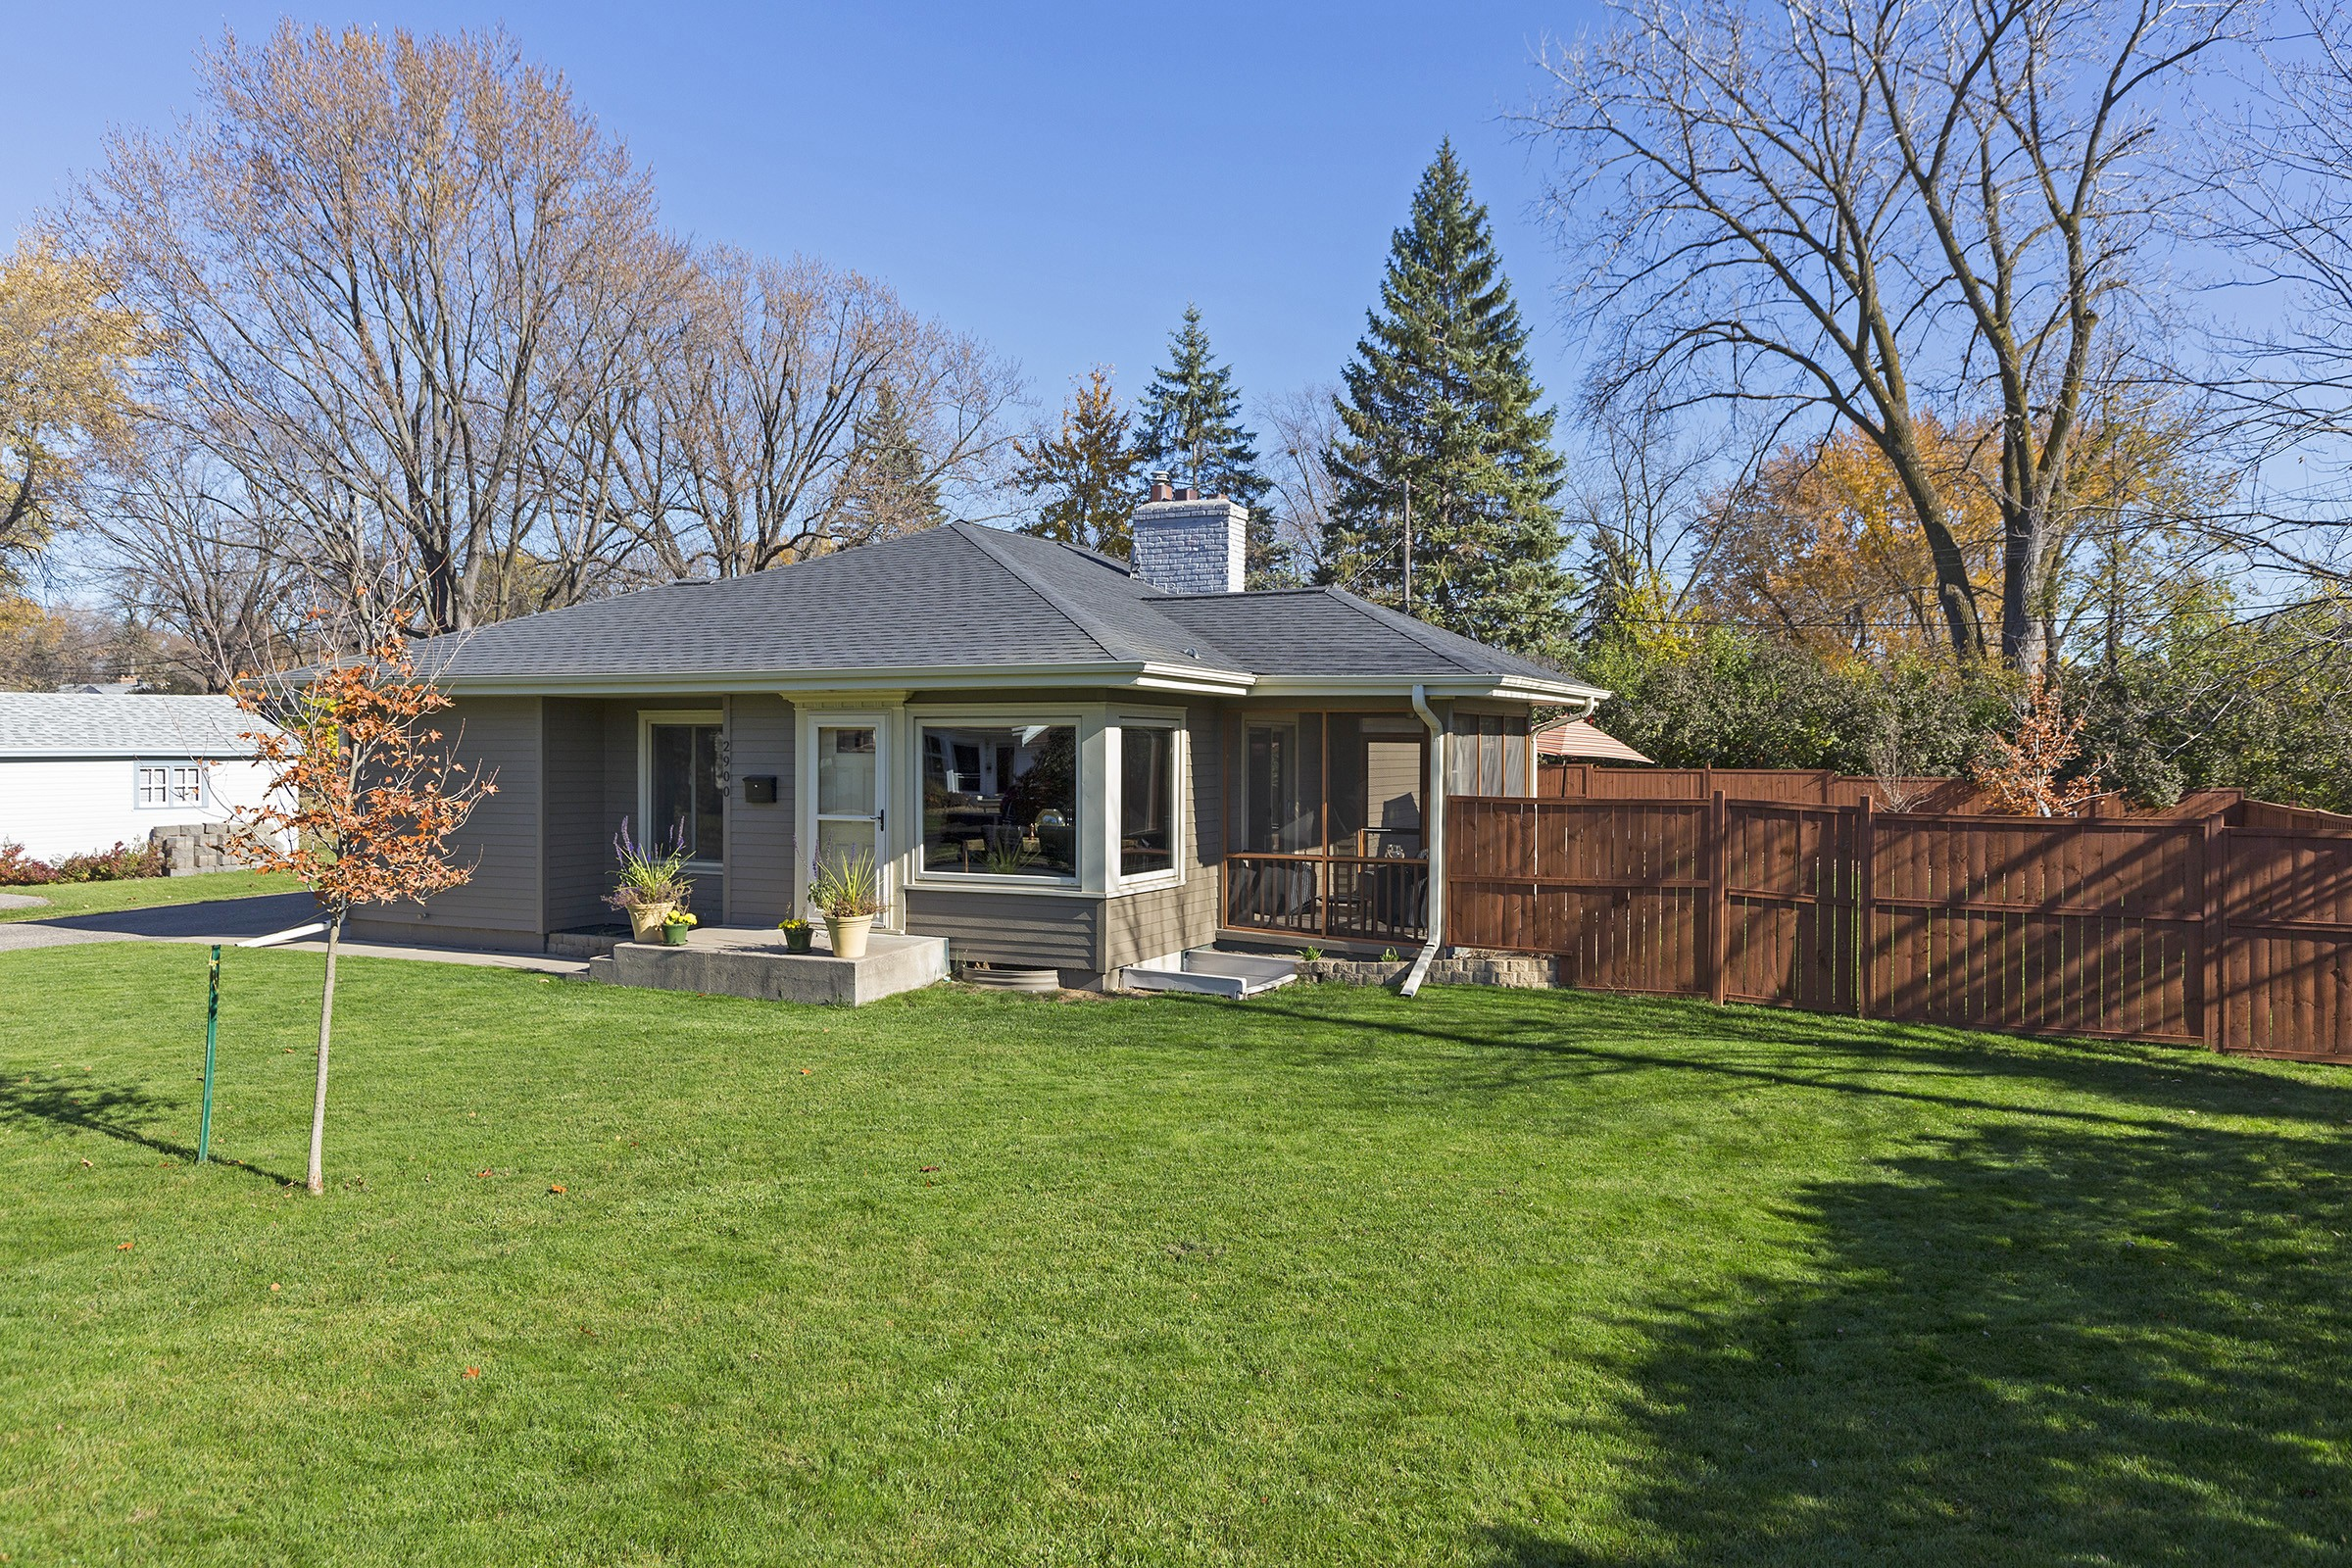 Single Family Home for Sale at 2900 Major Avenue N Golden Valley, Minnesota, 55422 United States